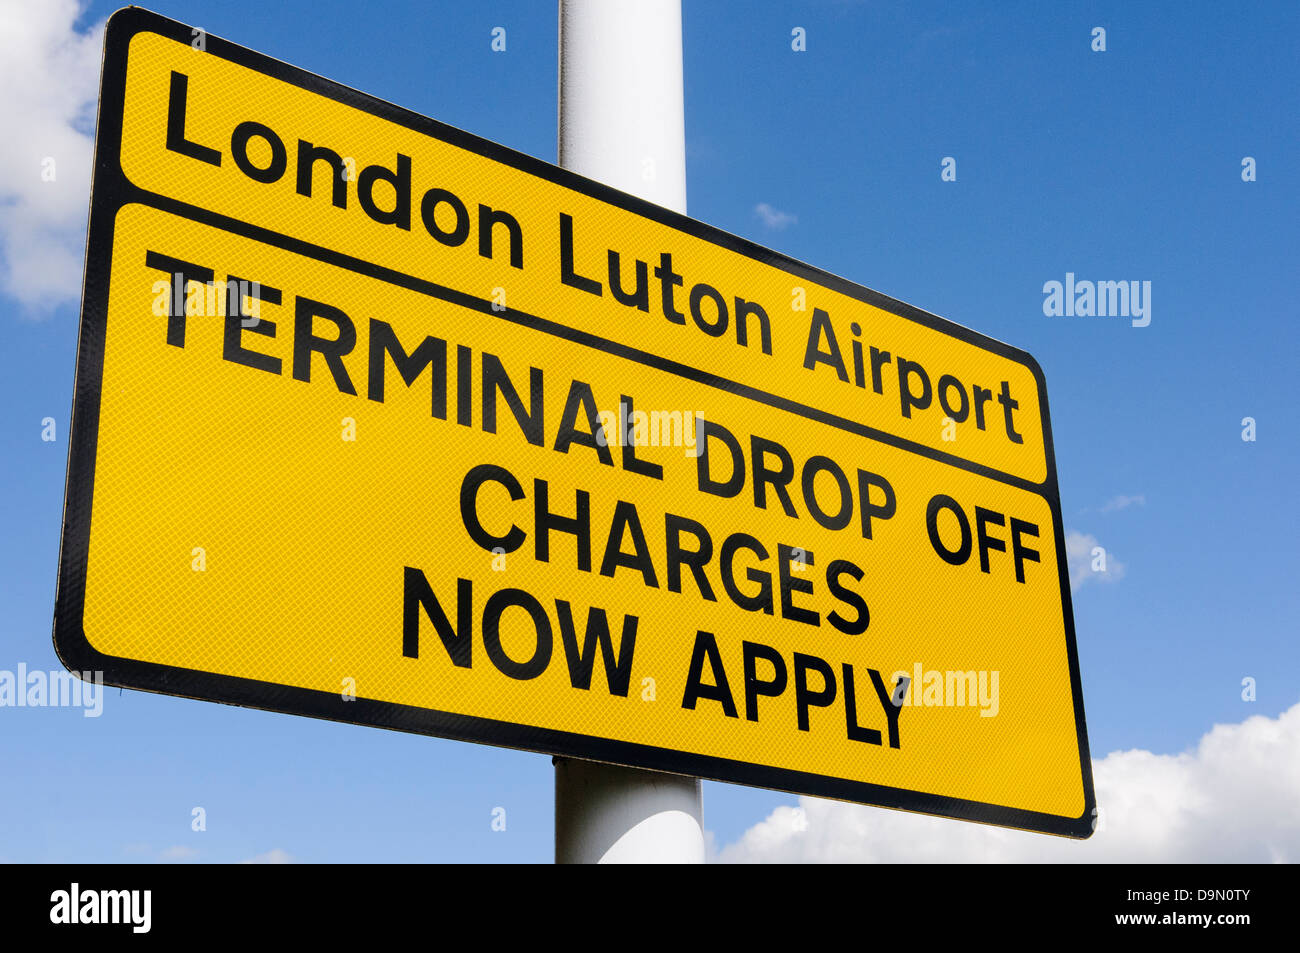 Sign at entrance to Luton Airport warning motorists that terminal drop off charges now apply Stock Photo